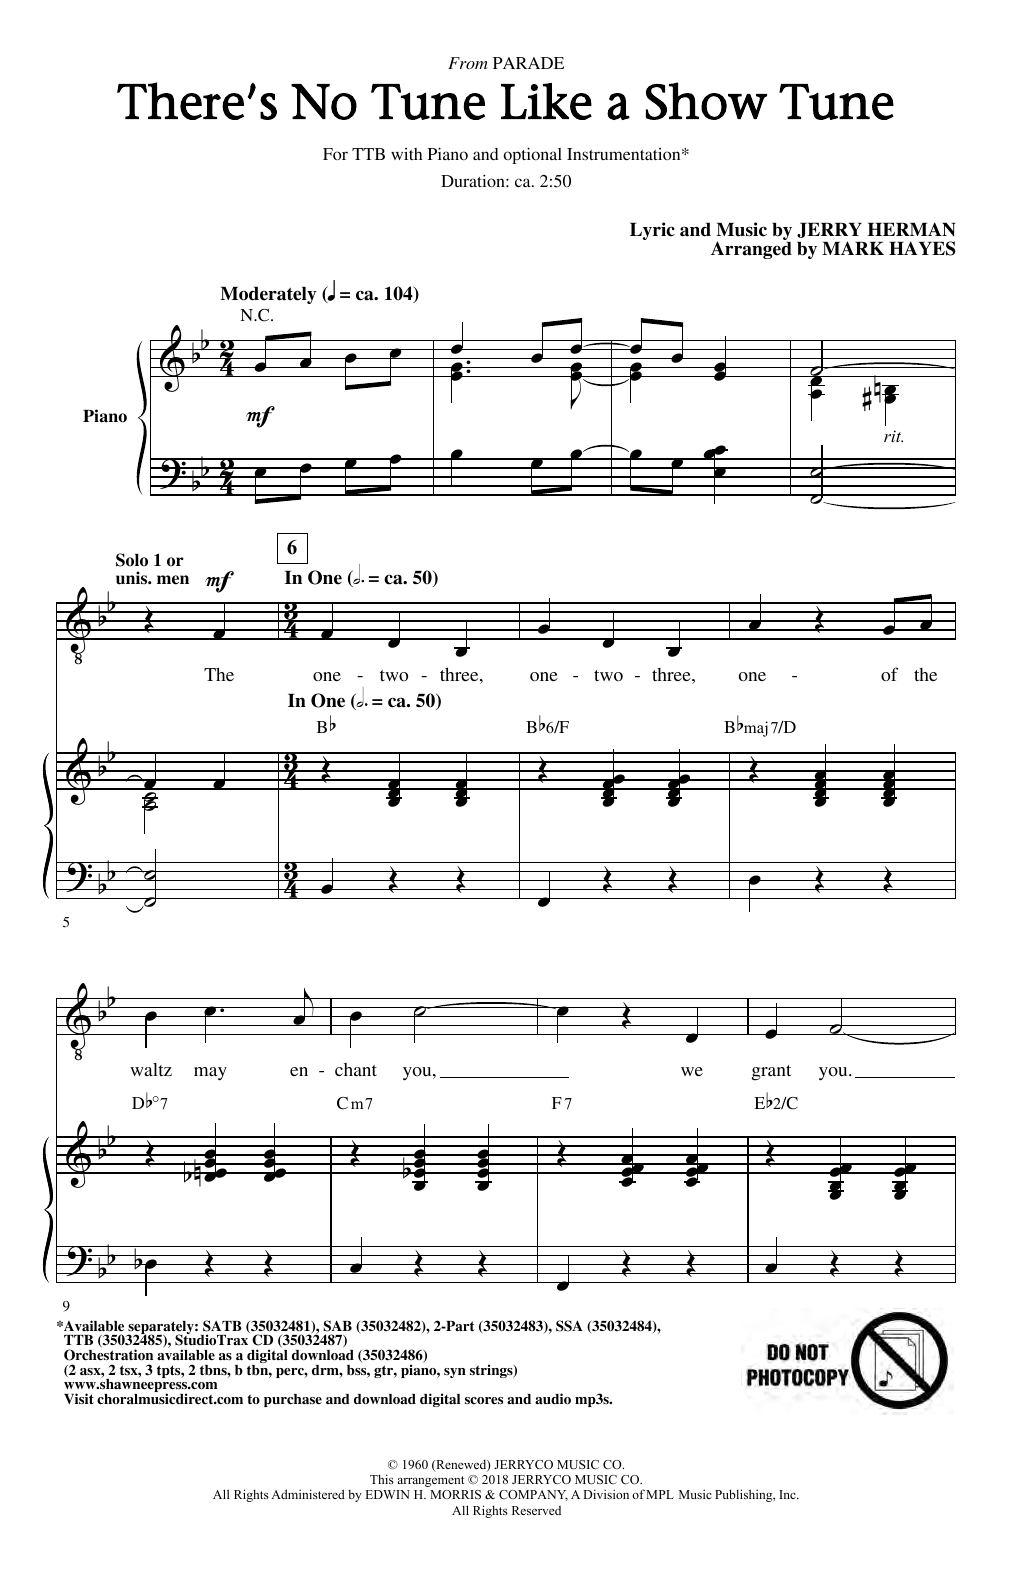 There's No Tune Like A Show Tune (arr. Mark Hayes) (TTBB Choir)